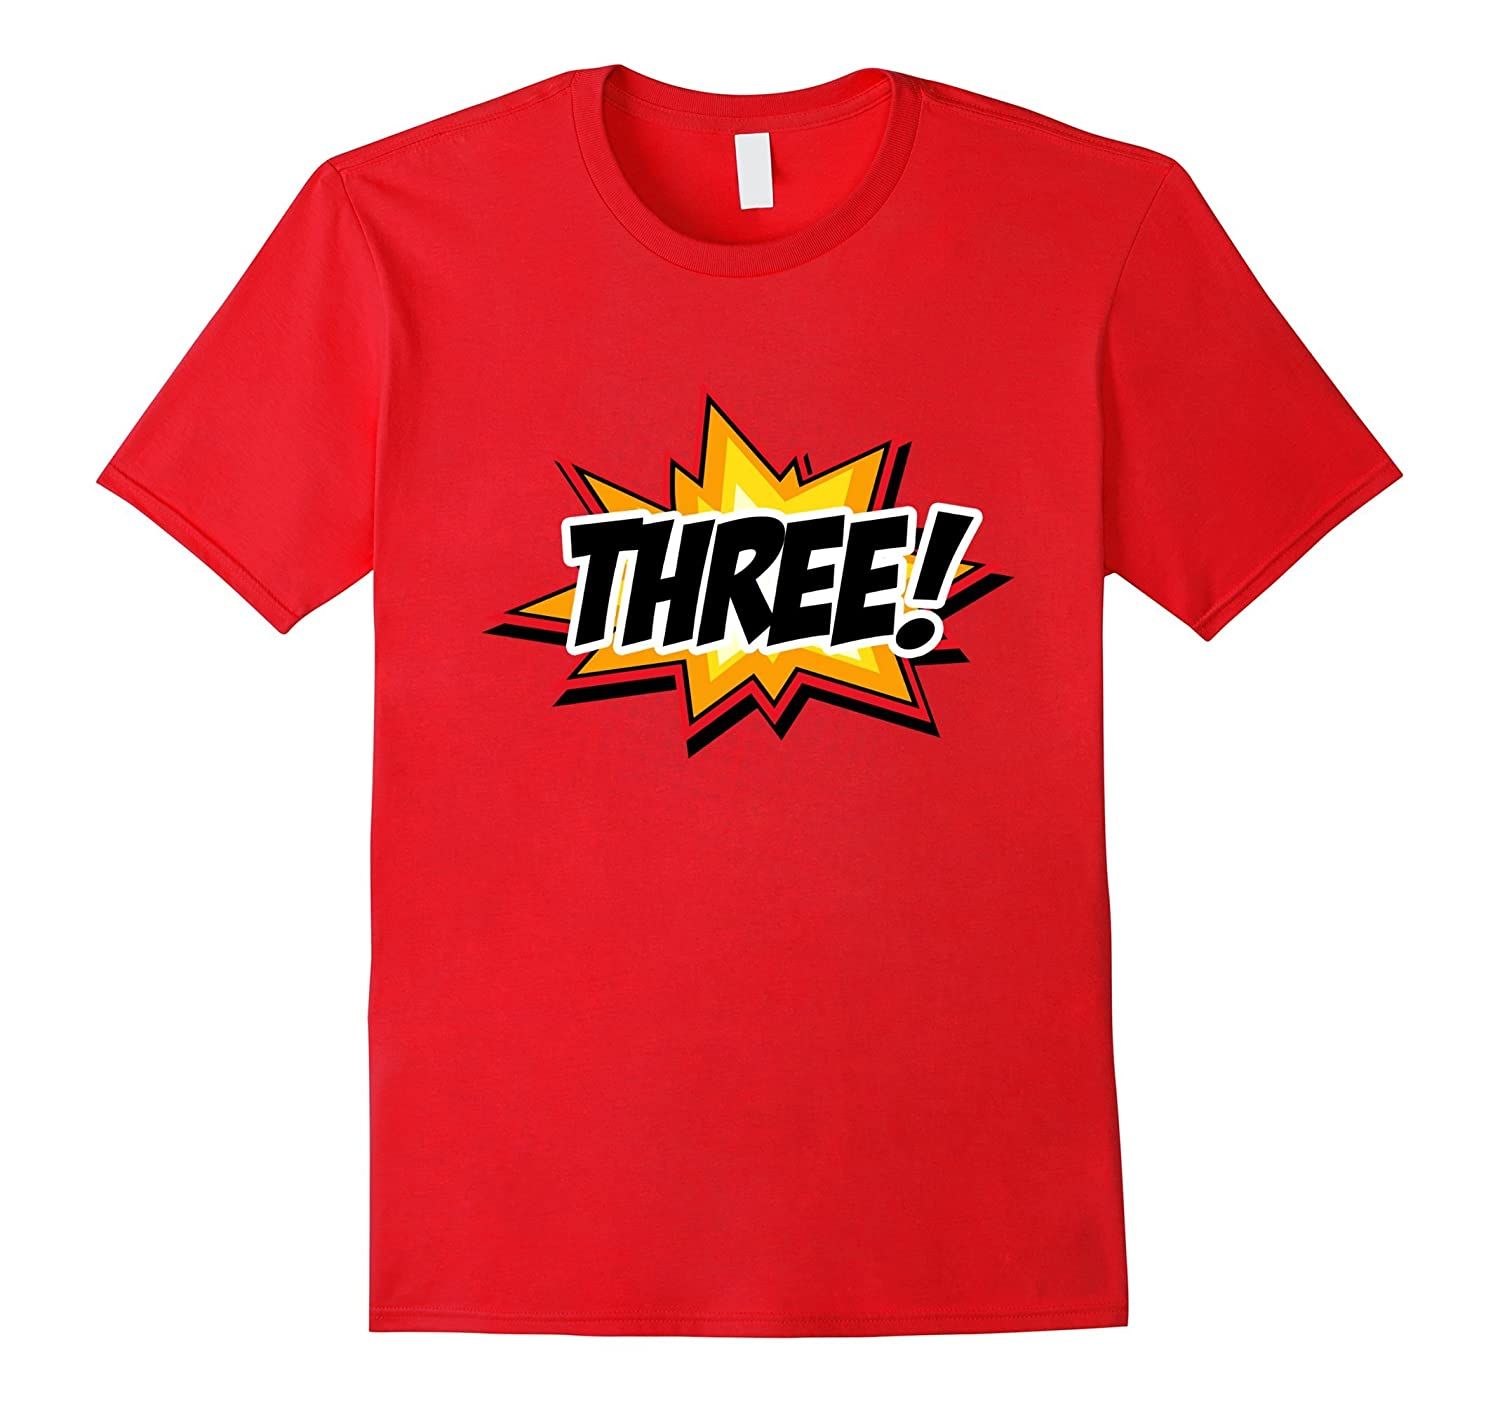 SuperHero Birthday Shirt 3 Year Old Boys And Girls ALL AGES CL Colamaga